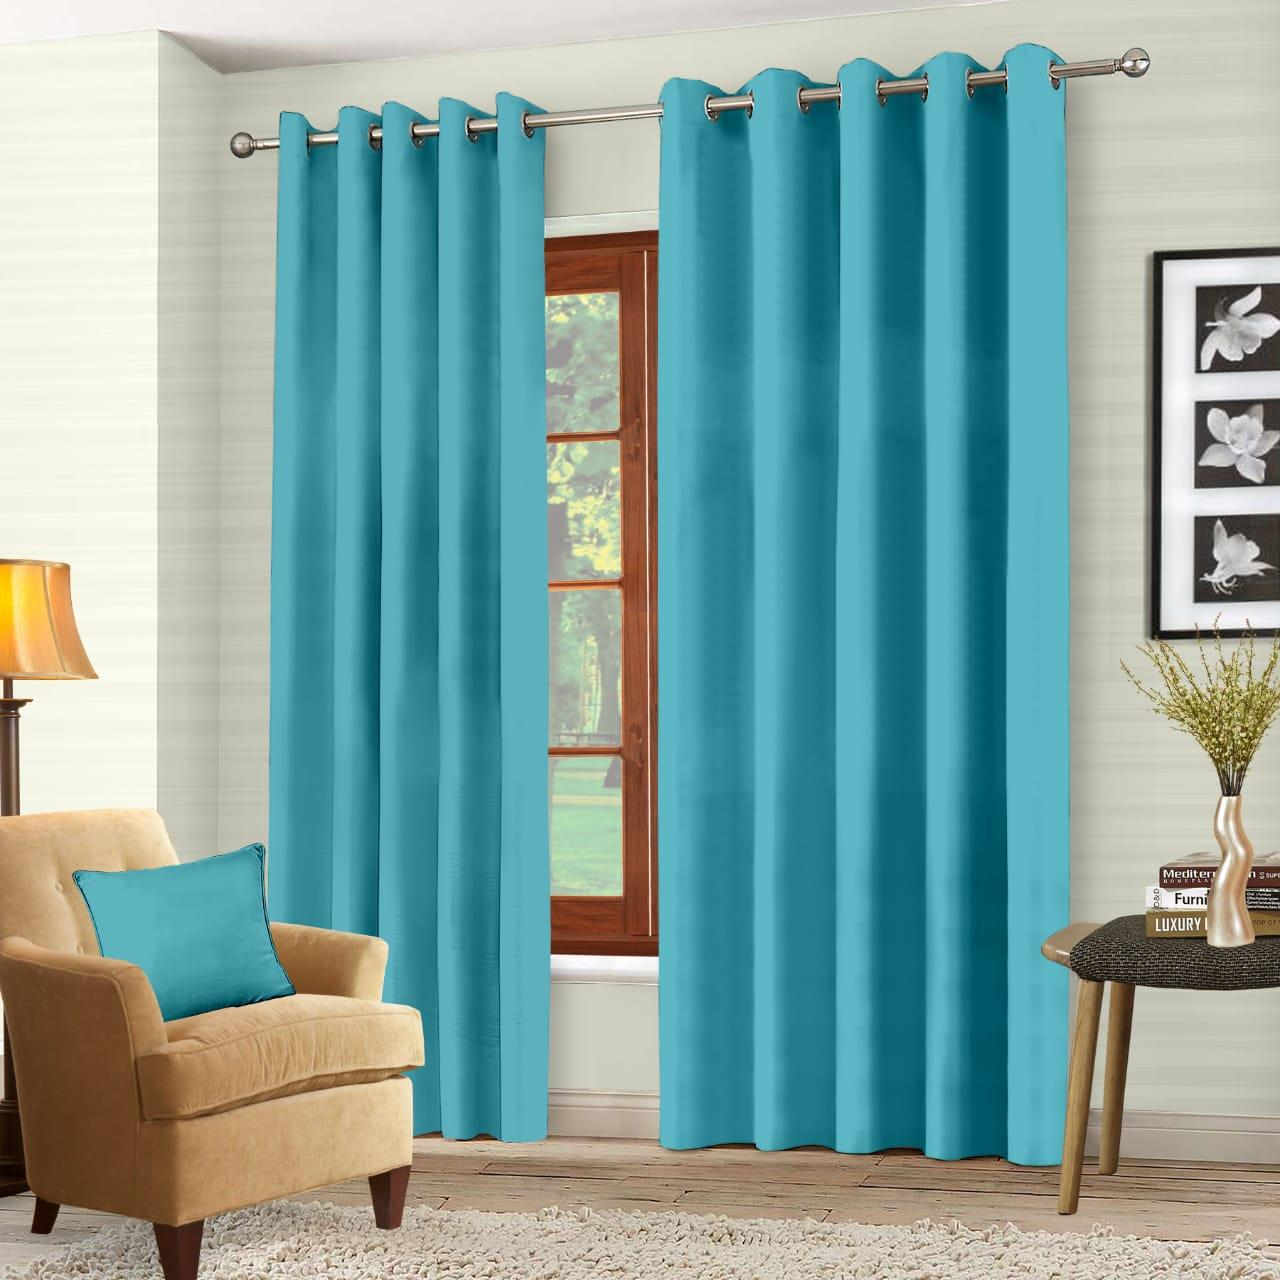 Luxury-Thermal-Blackout-Eyelet-Ring-Top-Curtains-Pair-with-tie-backs thumbnail 59